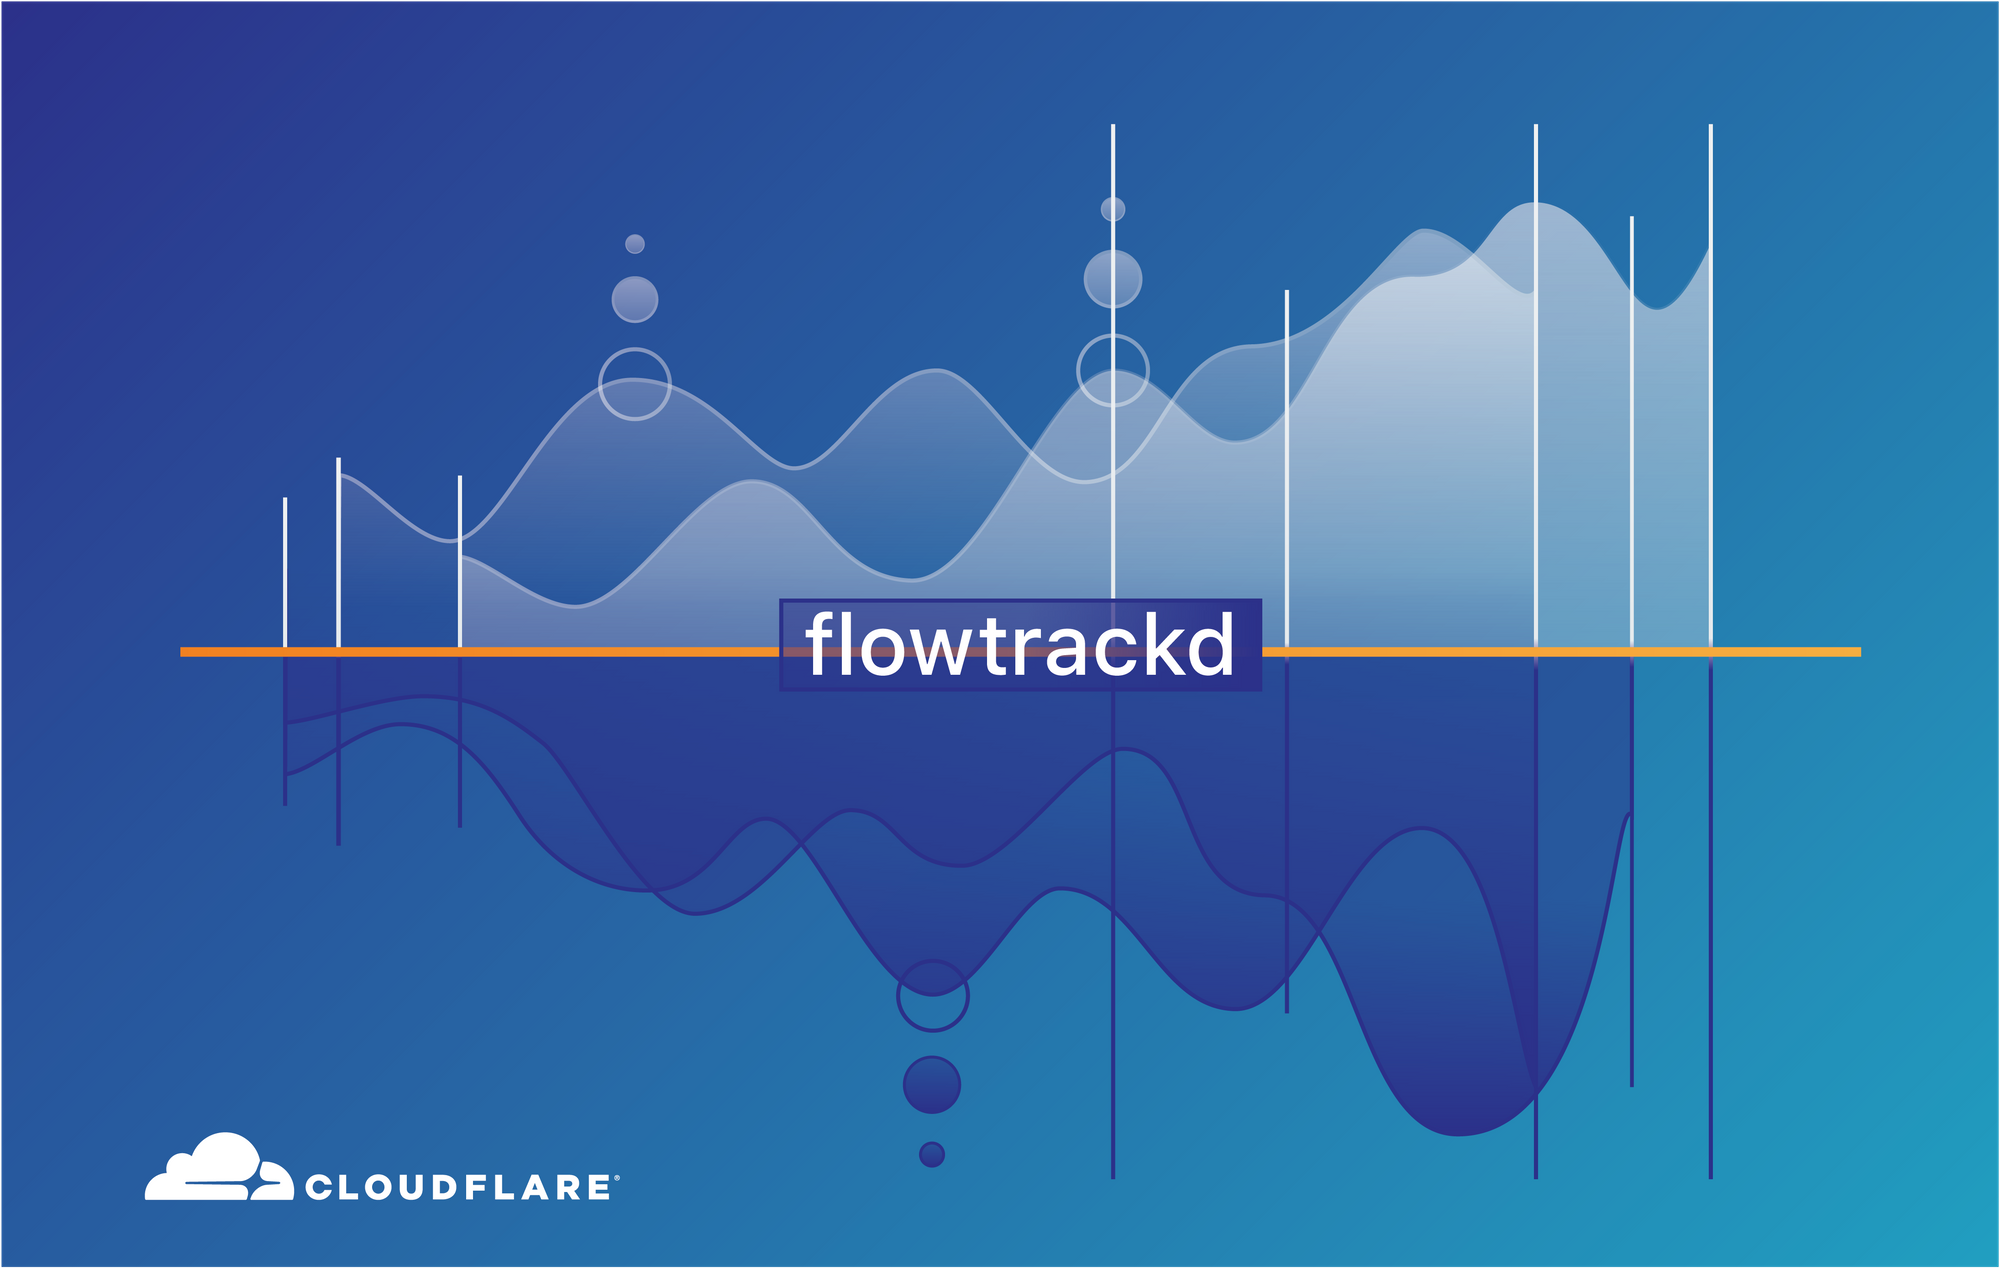 flowtrackd: DDoS Protection with Unidirectional TCP Flow Tracking